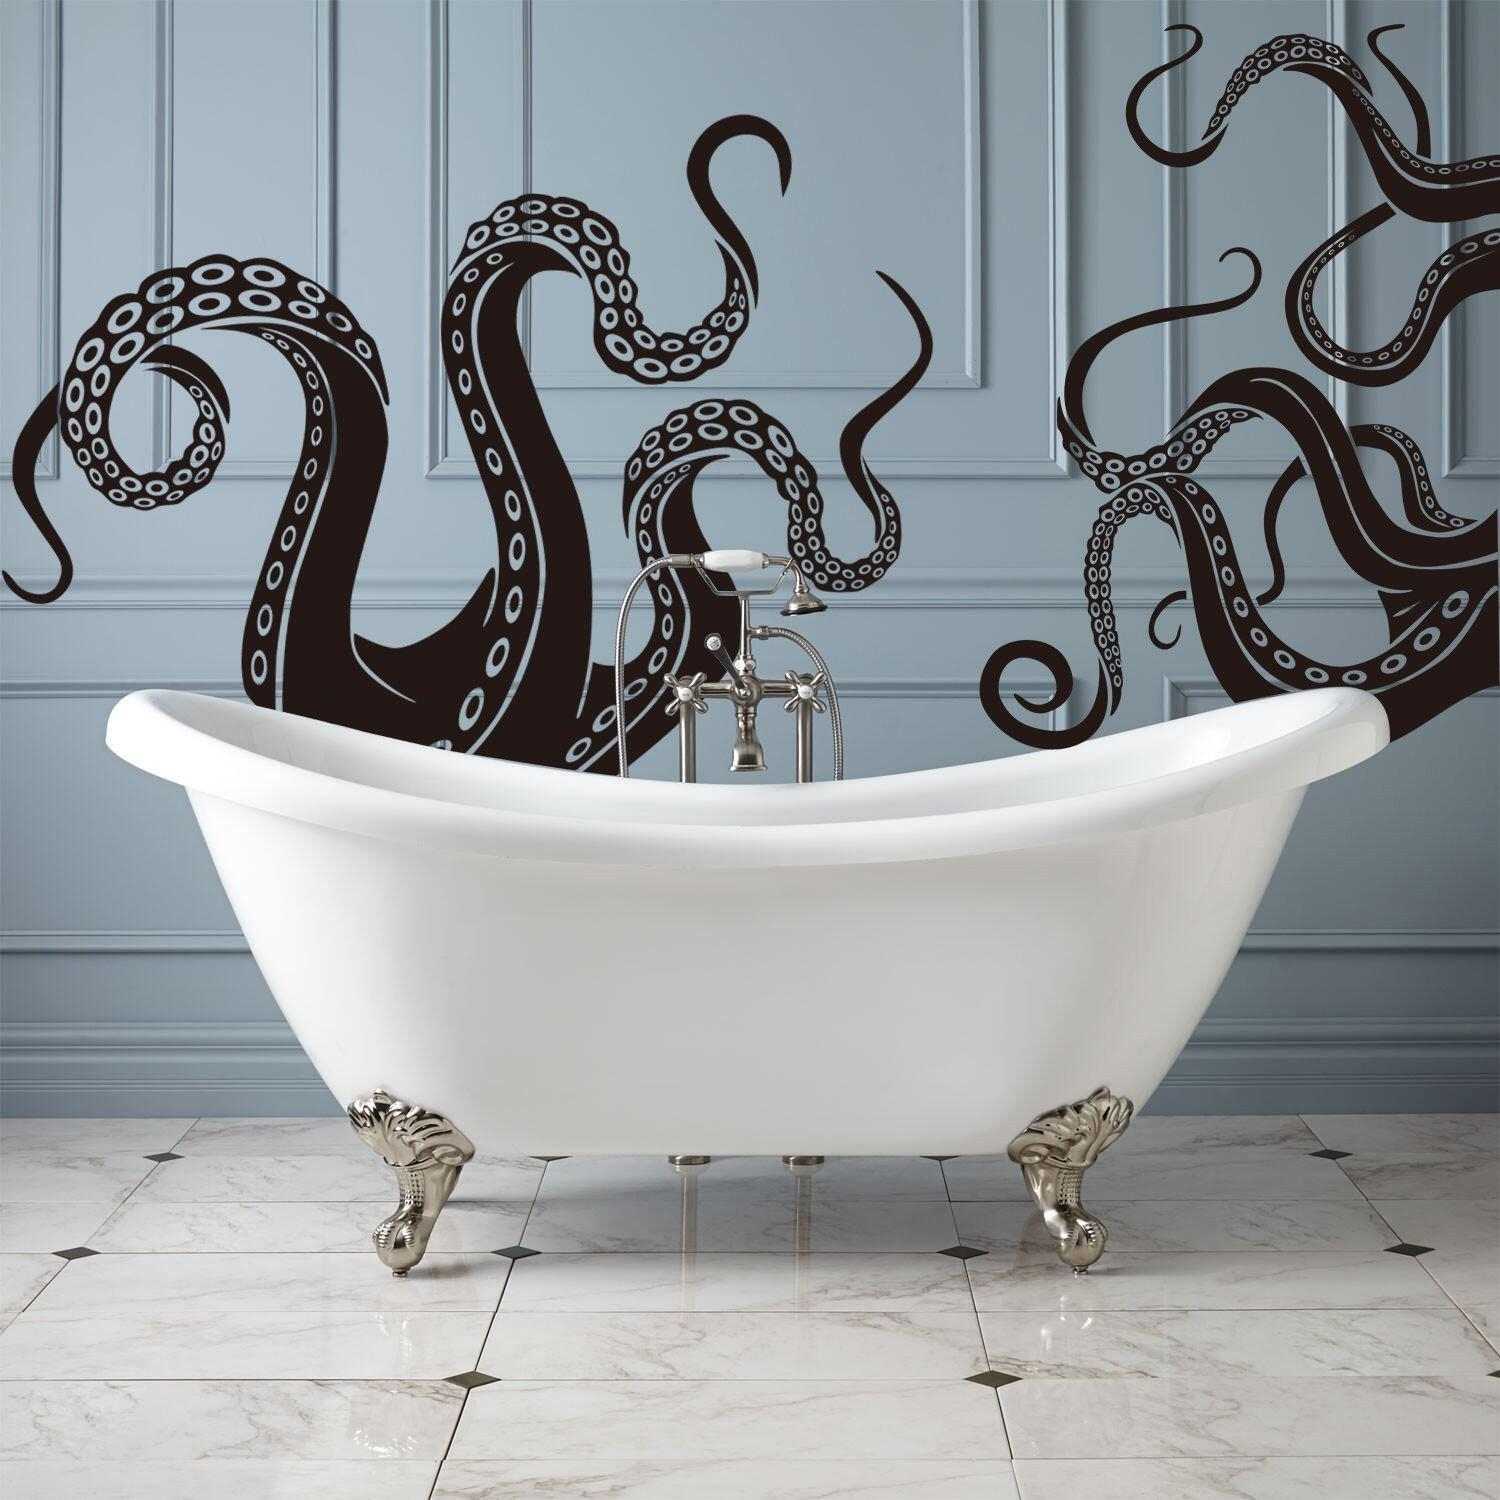 Octopus Tentacles Vinyl Wall Decal Sea Monster Sticker Kraken Pertaining To Octopus Tentacle Wall Art (View 20 of 20)